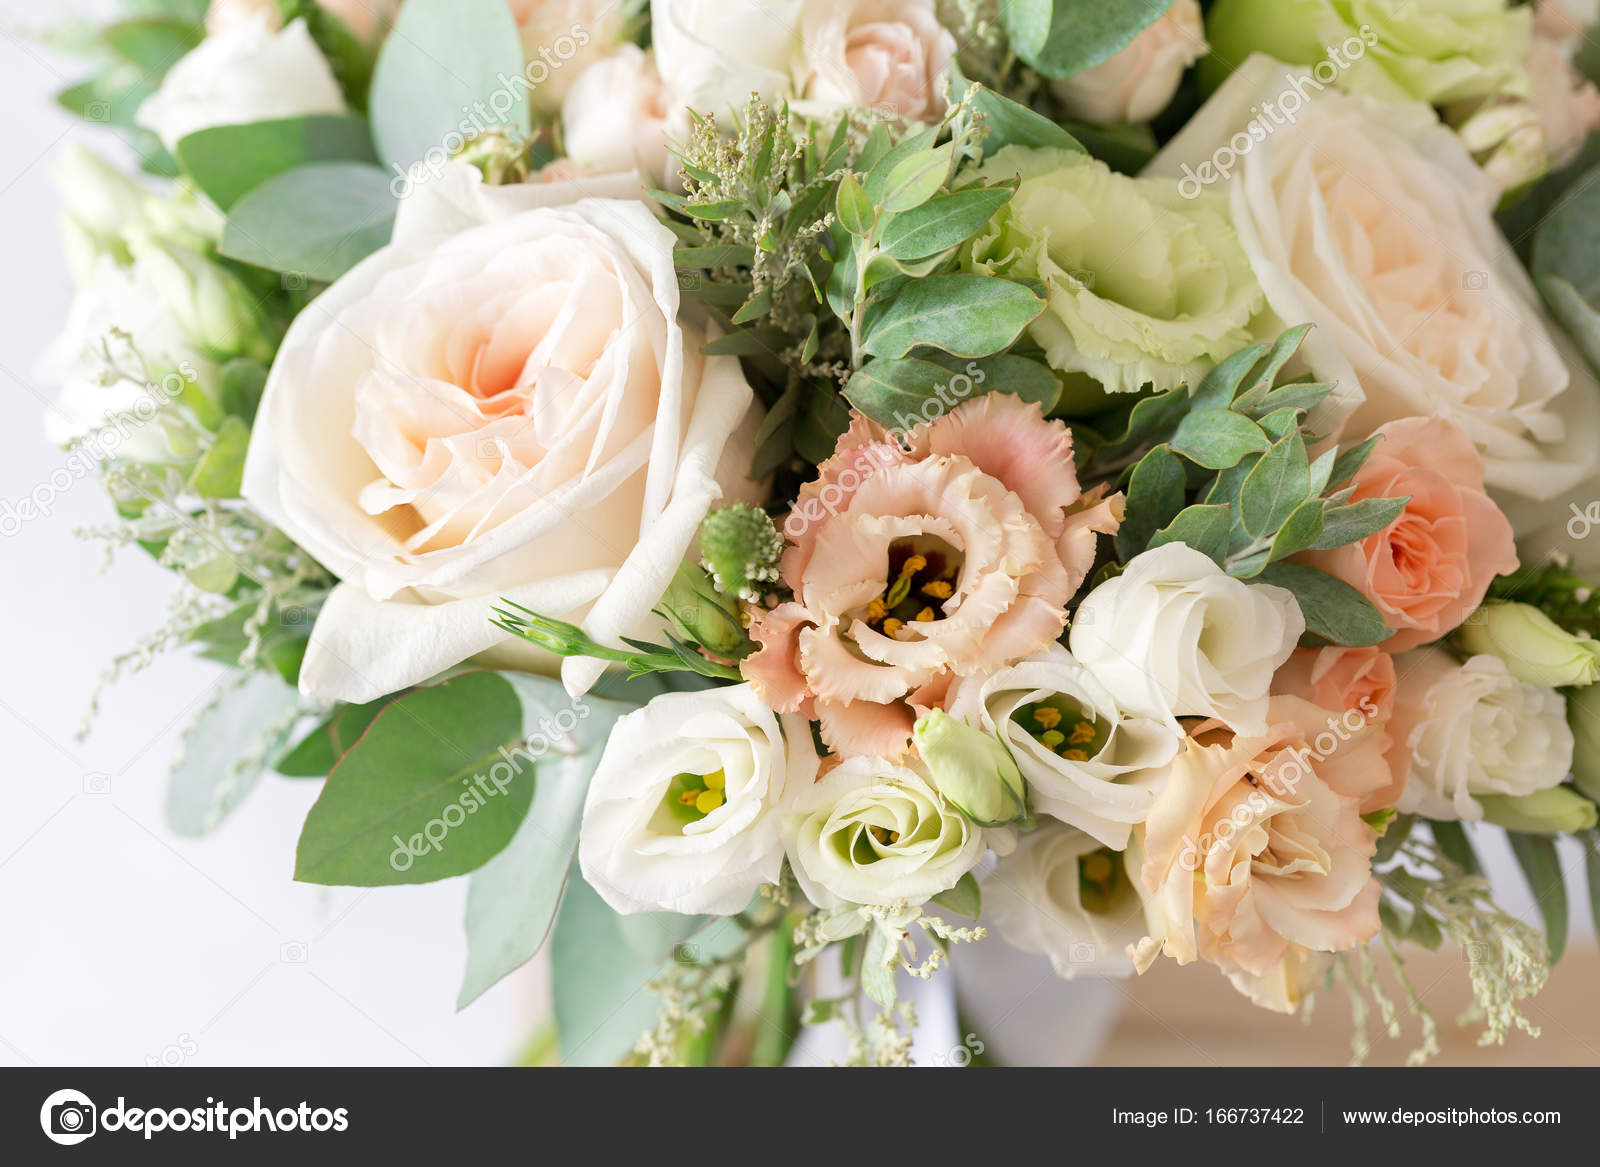 Bridal bouquet a simple bouquet of flowers and greens stock photo bridal bouquet a simple bouquet of flowers and greens stock photo izmirmasajfo